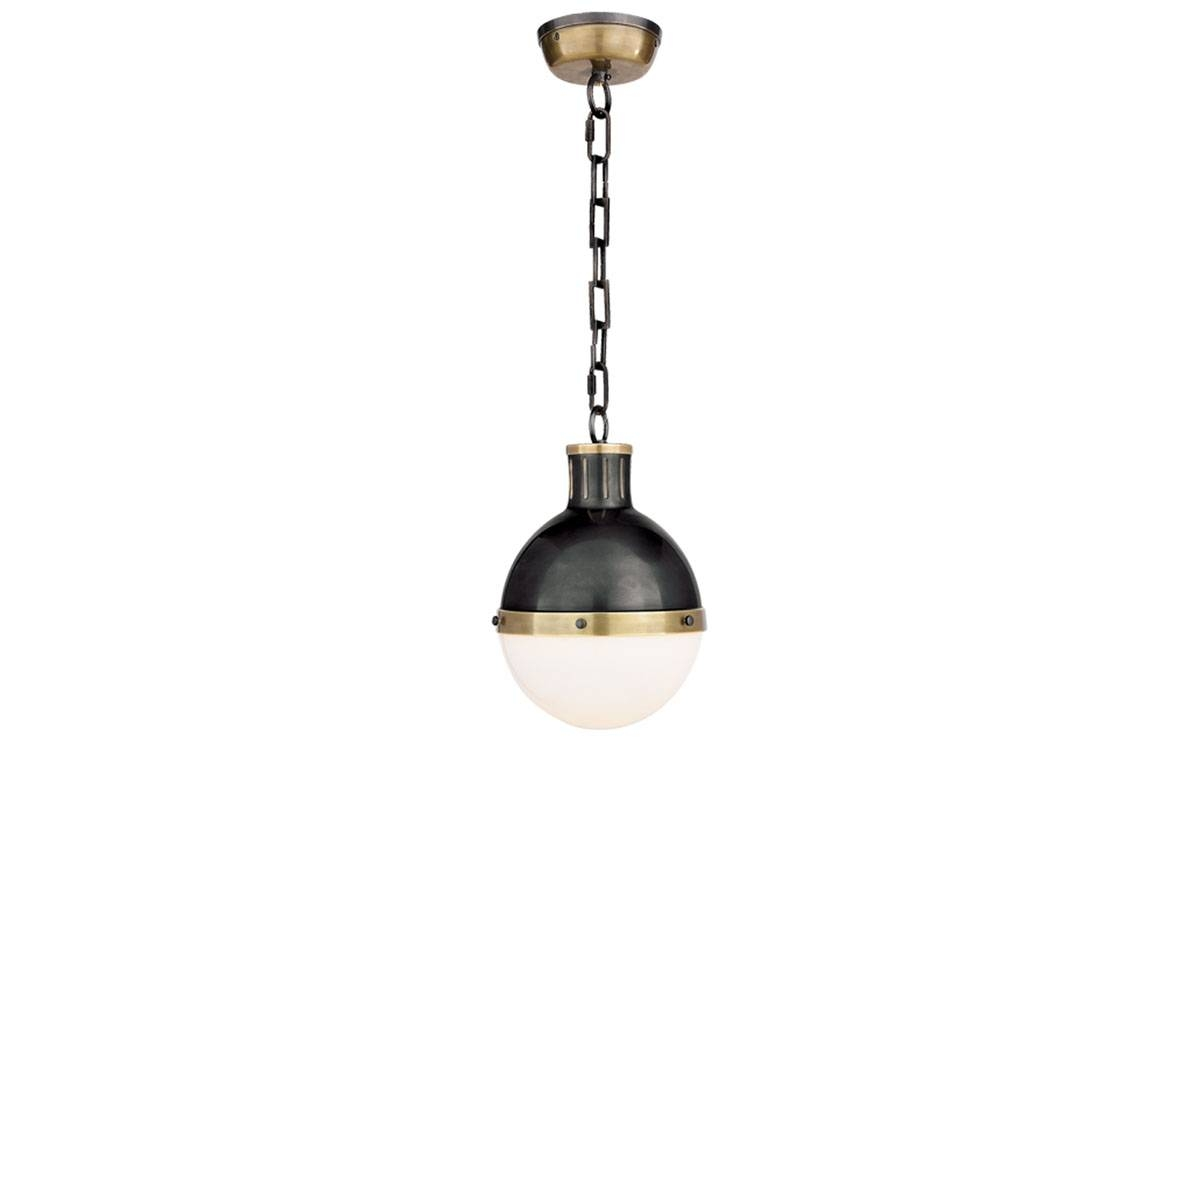 Visual Comfort Small Hicks Pendant, Pendant Fixture | Neenas Lighting Throughout Small Hicks Pendants (View 14 of 15)